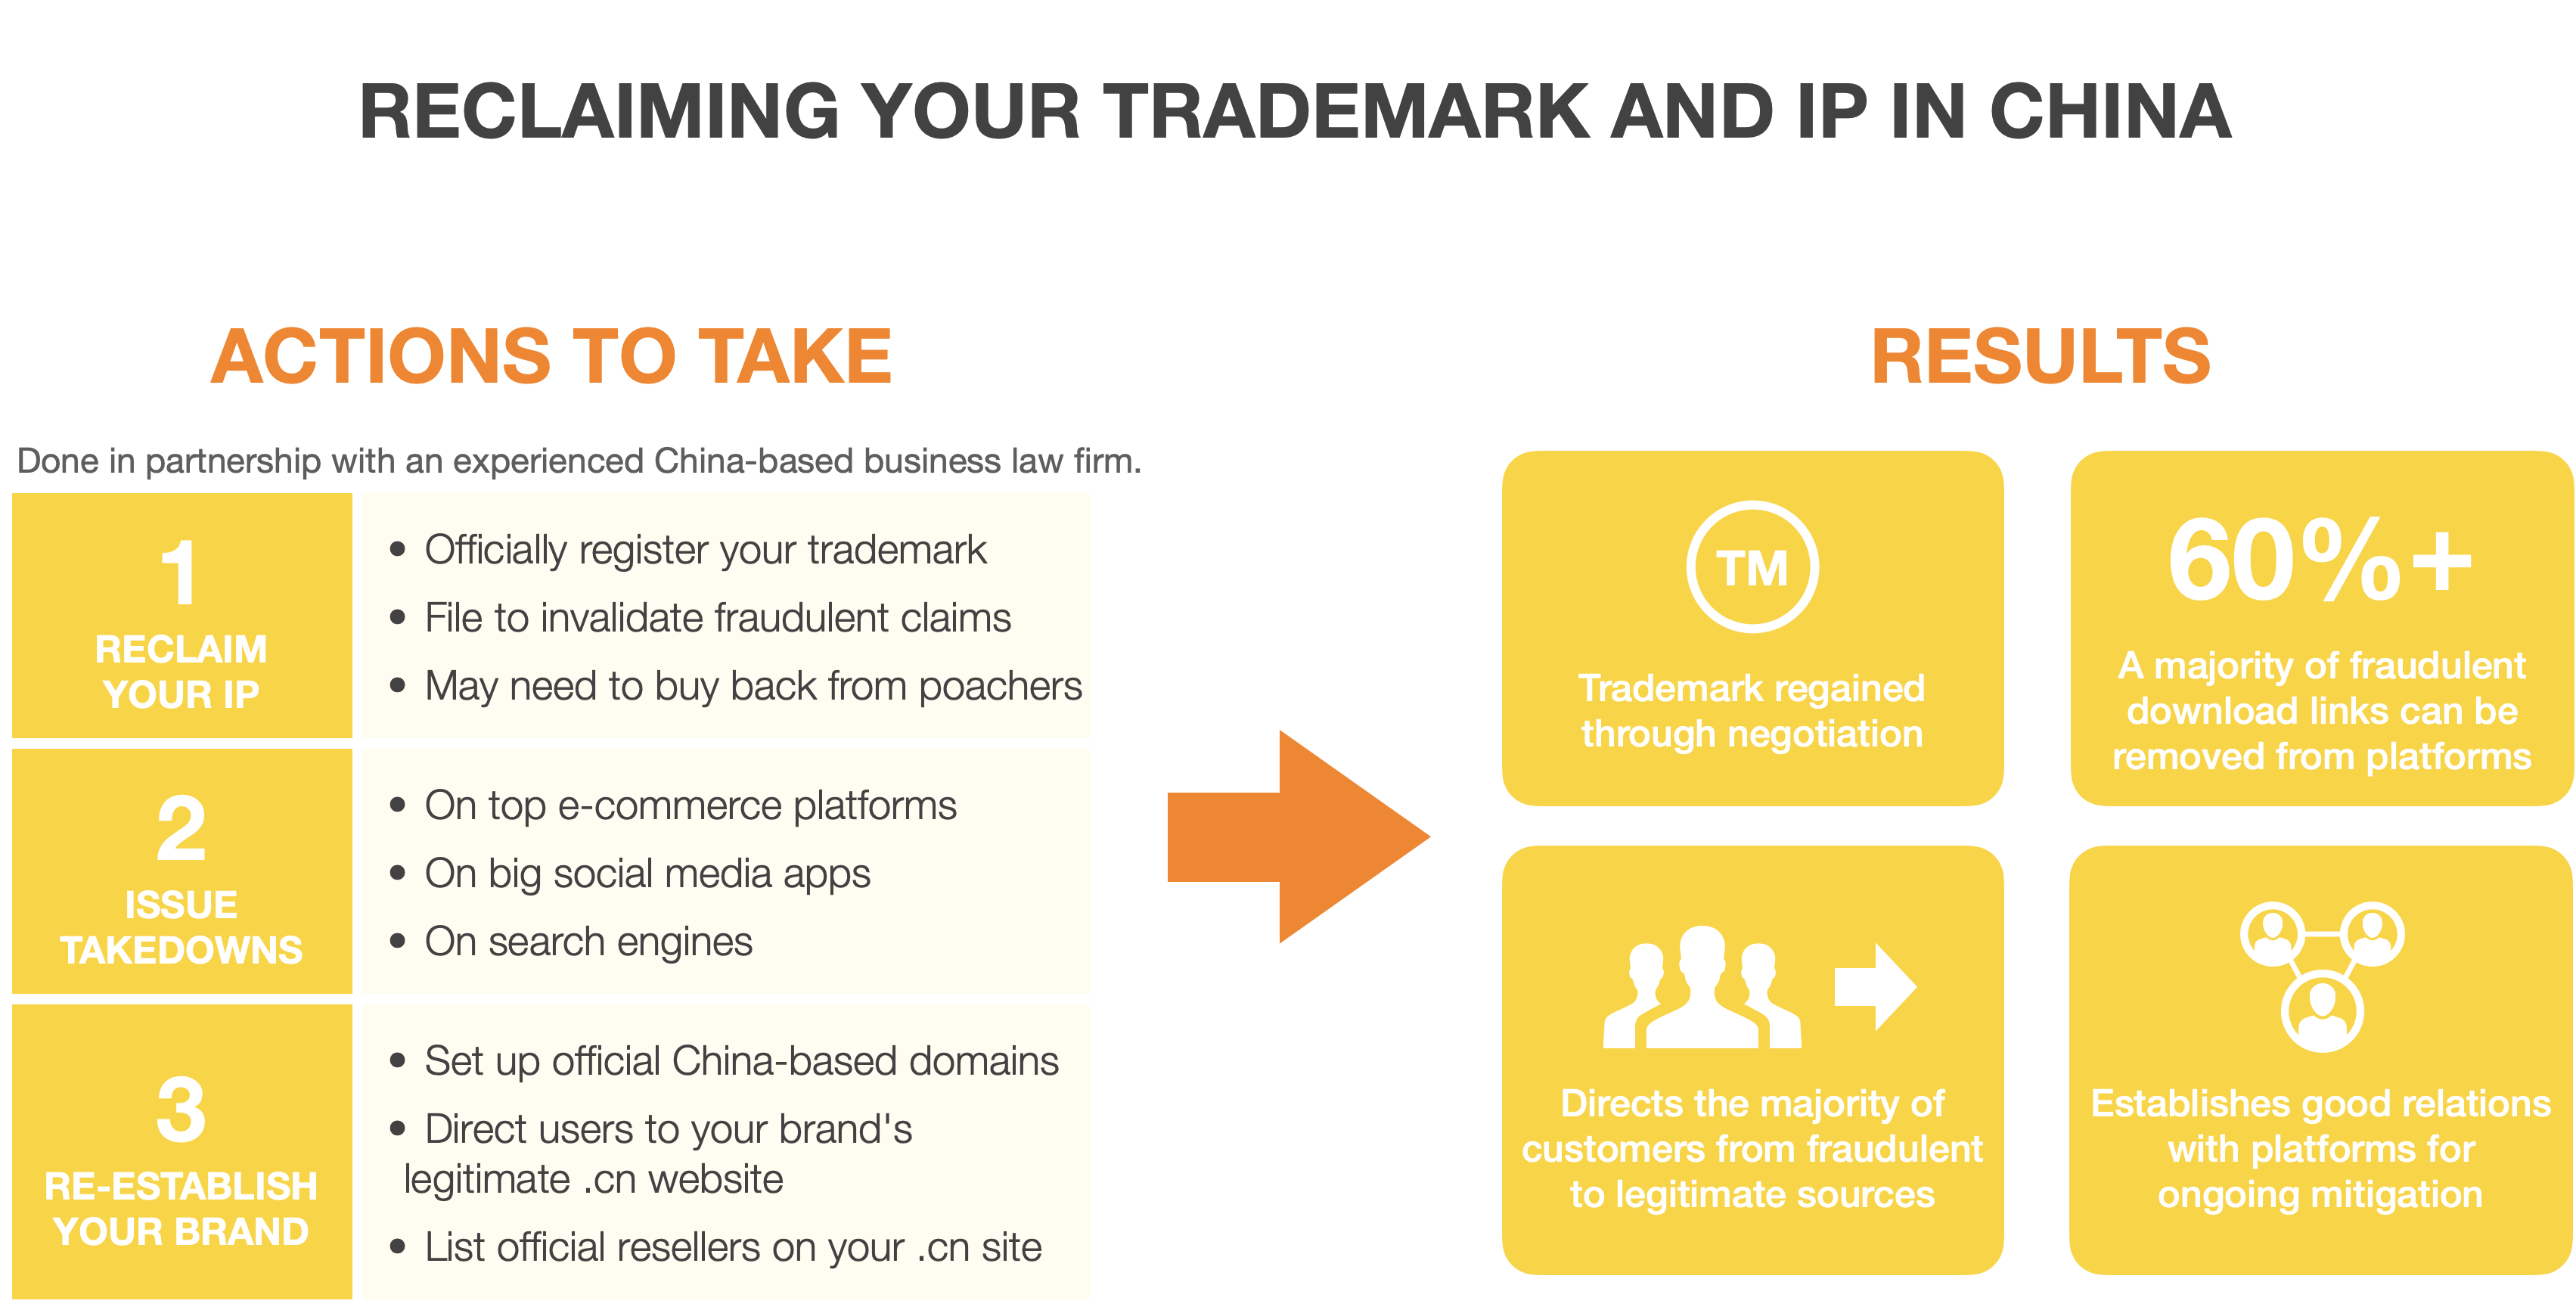 reclaiming your trademark and IP in China